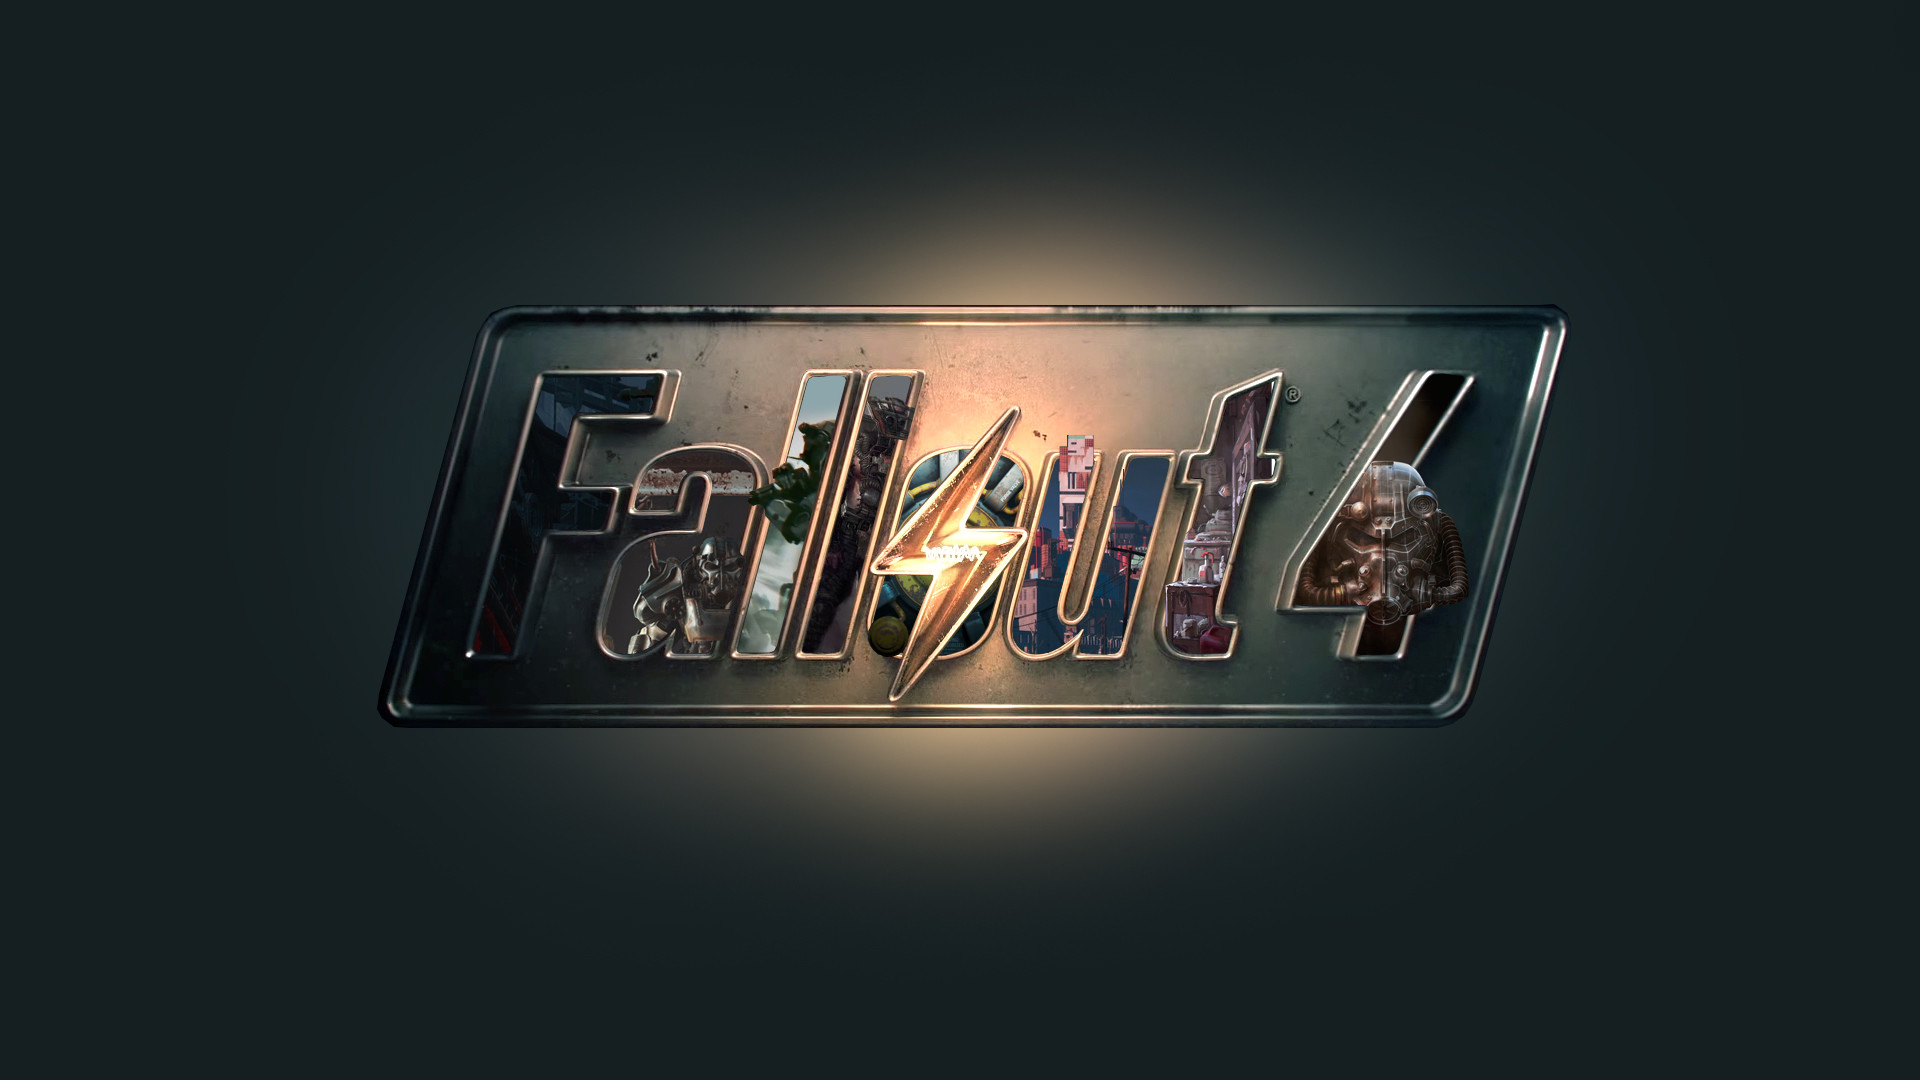 Fan-Made Fallout 4 wallpaper (thought I'd share) …